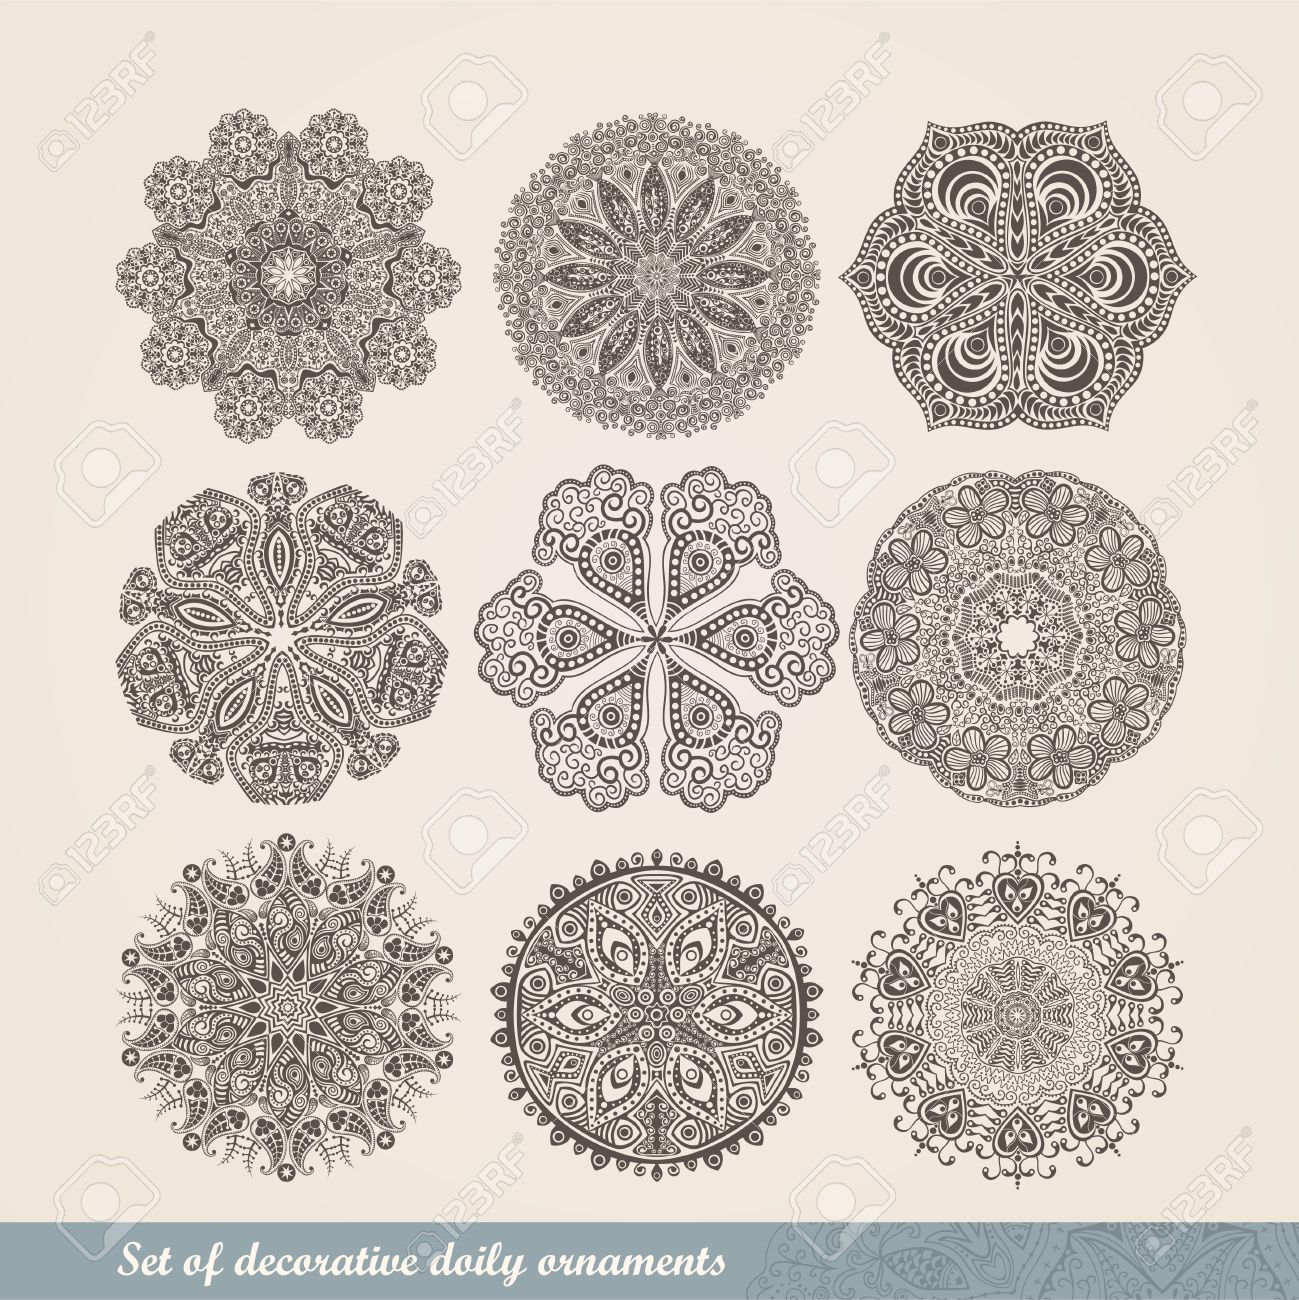 Vector Indian ornament, kaleidoscopic floral pattern, mandala. Set of nine ornament lace. ornamental round lace pattern, circle background with many details, looks like crocheting handmade lace - 25379795